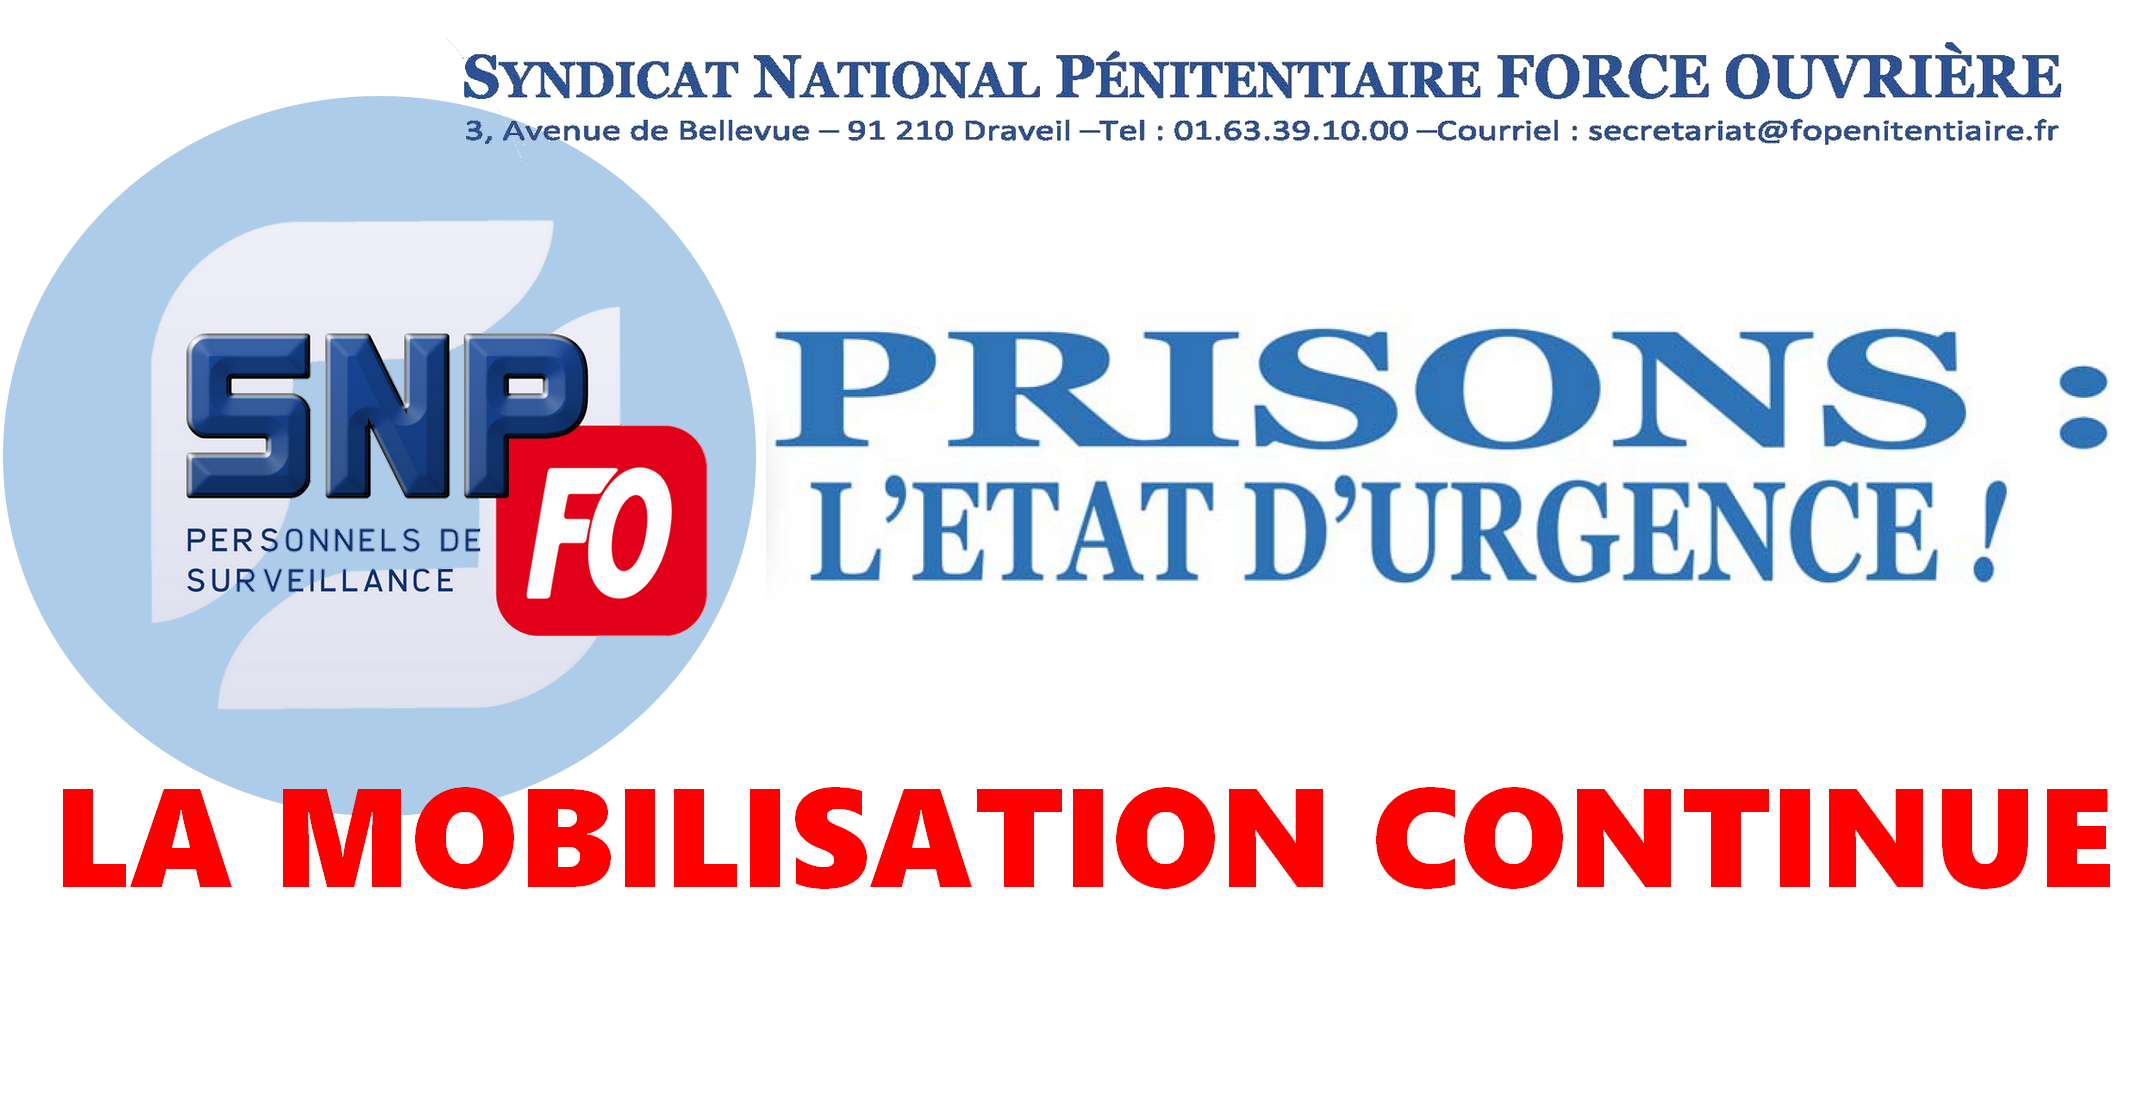 prisons l 39 tat d 39 urgence la mobilisation continue snp fo syndicat national p nitentiaire. Black Bedroom Furniture Sets. Home Design Ideas